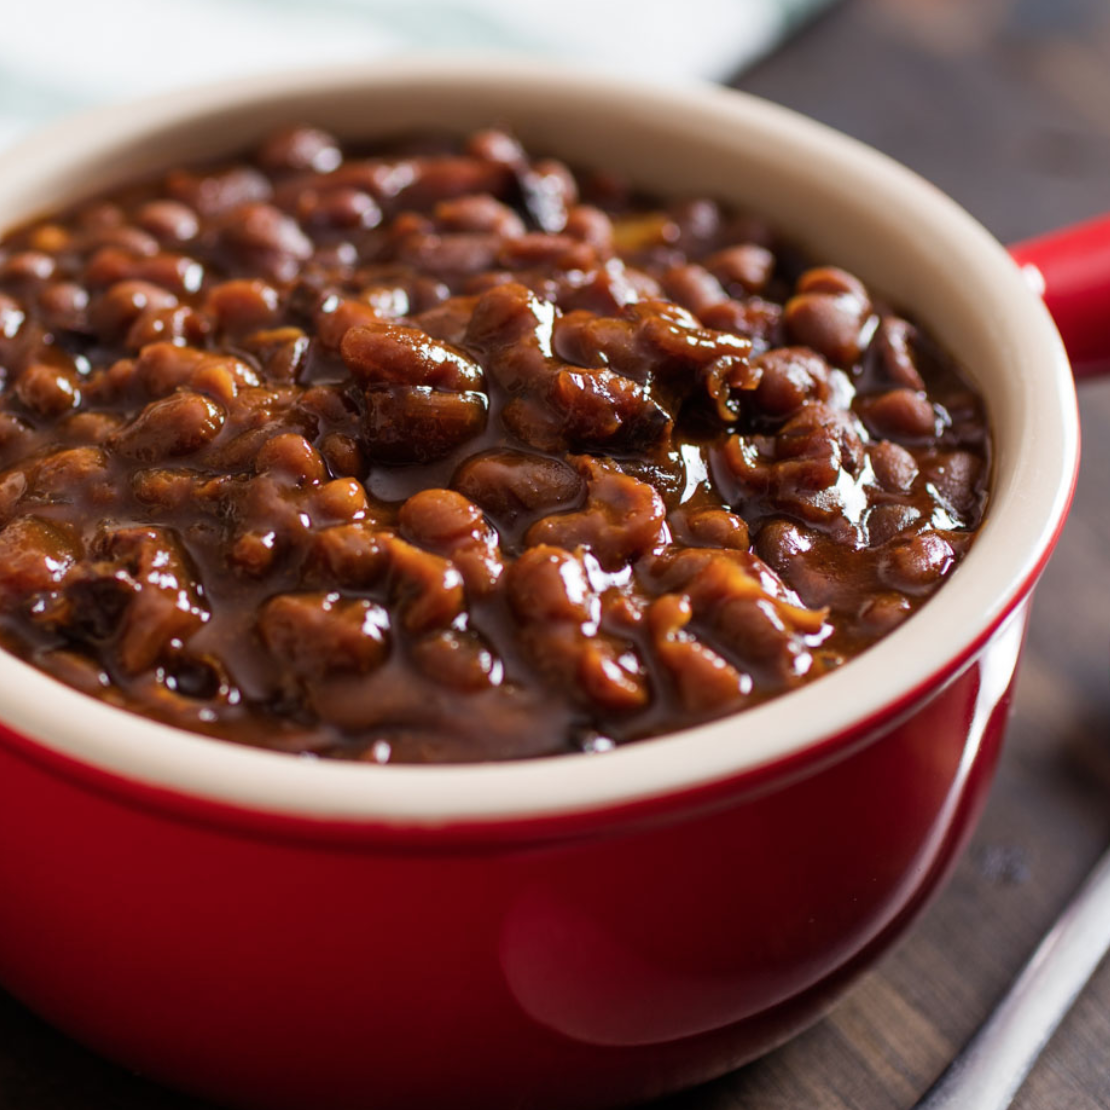 South Boston Baked Beans Yib